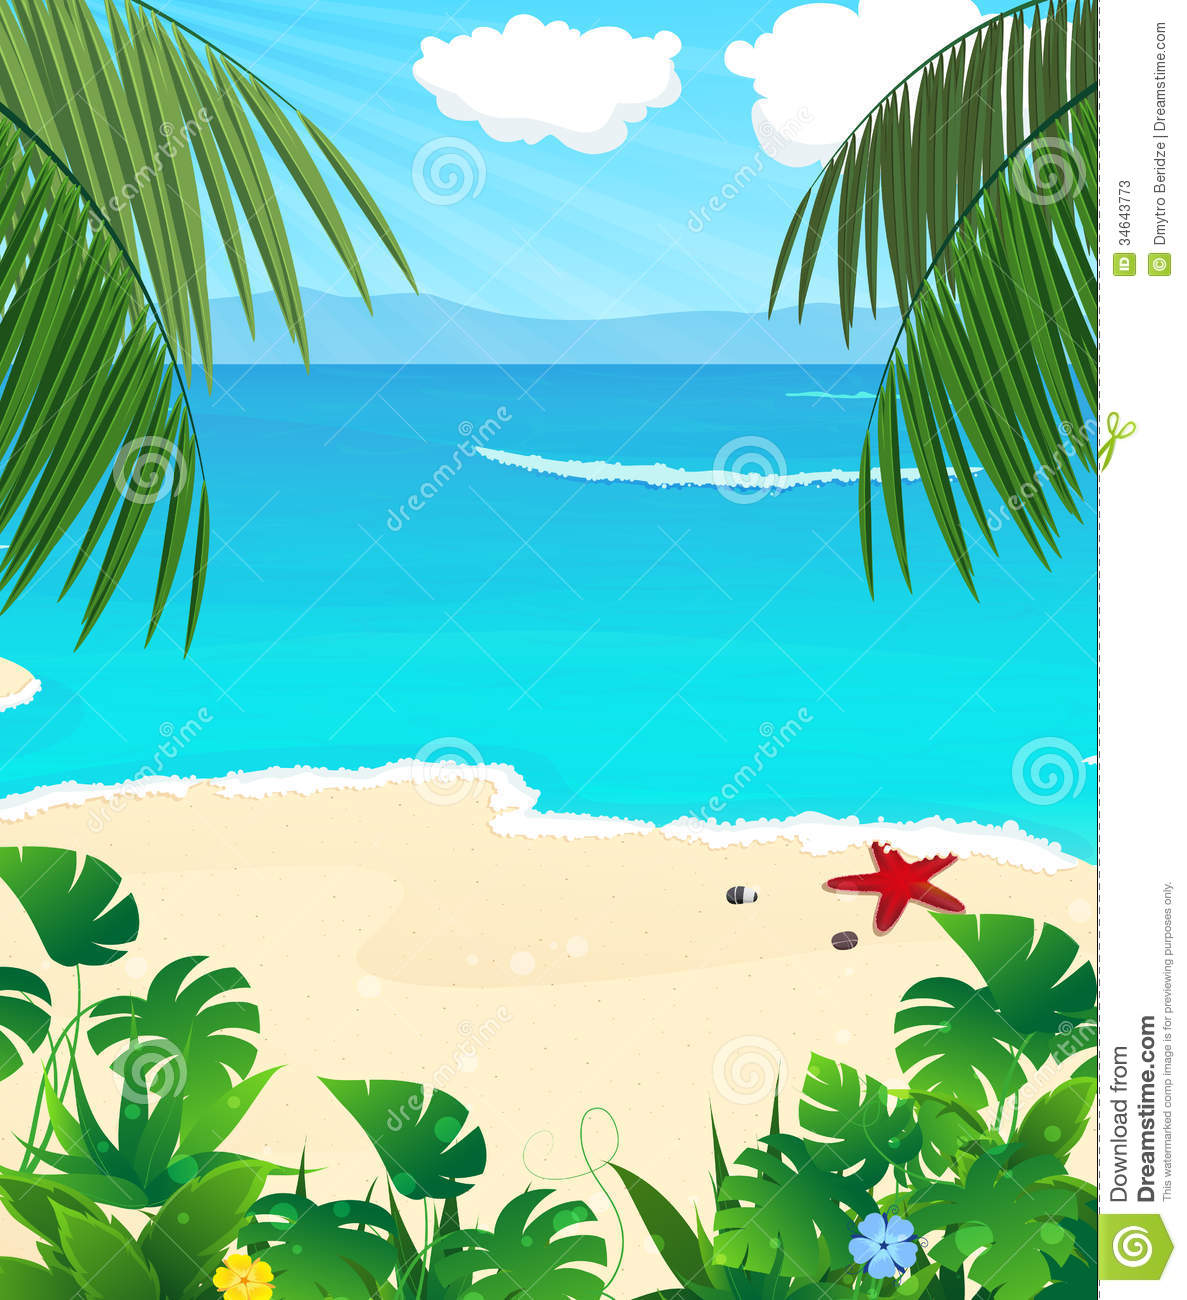 Seascape clipart #13, Download drawings